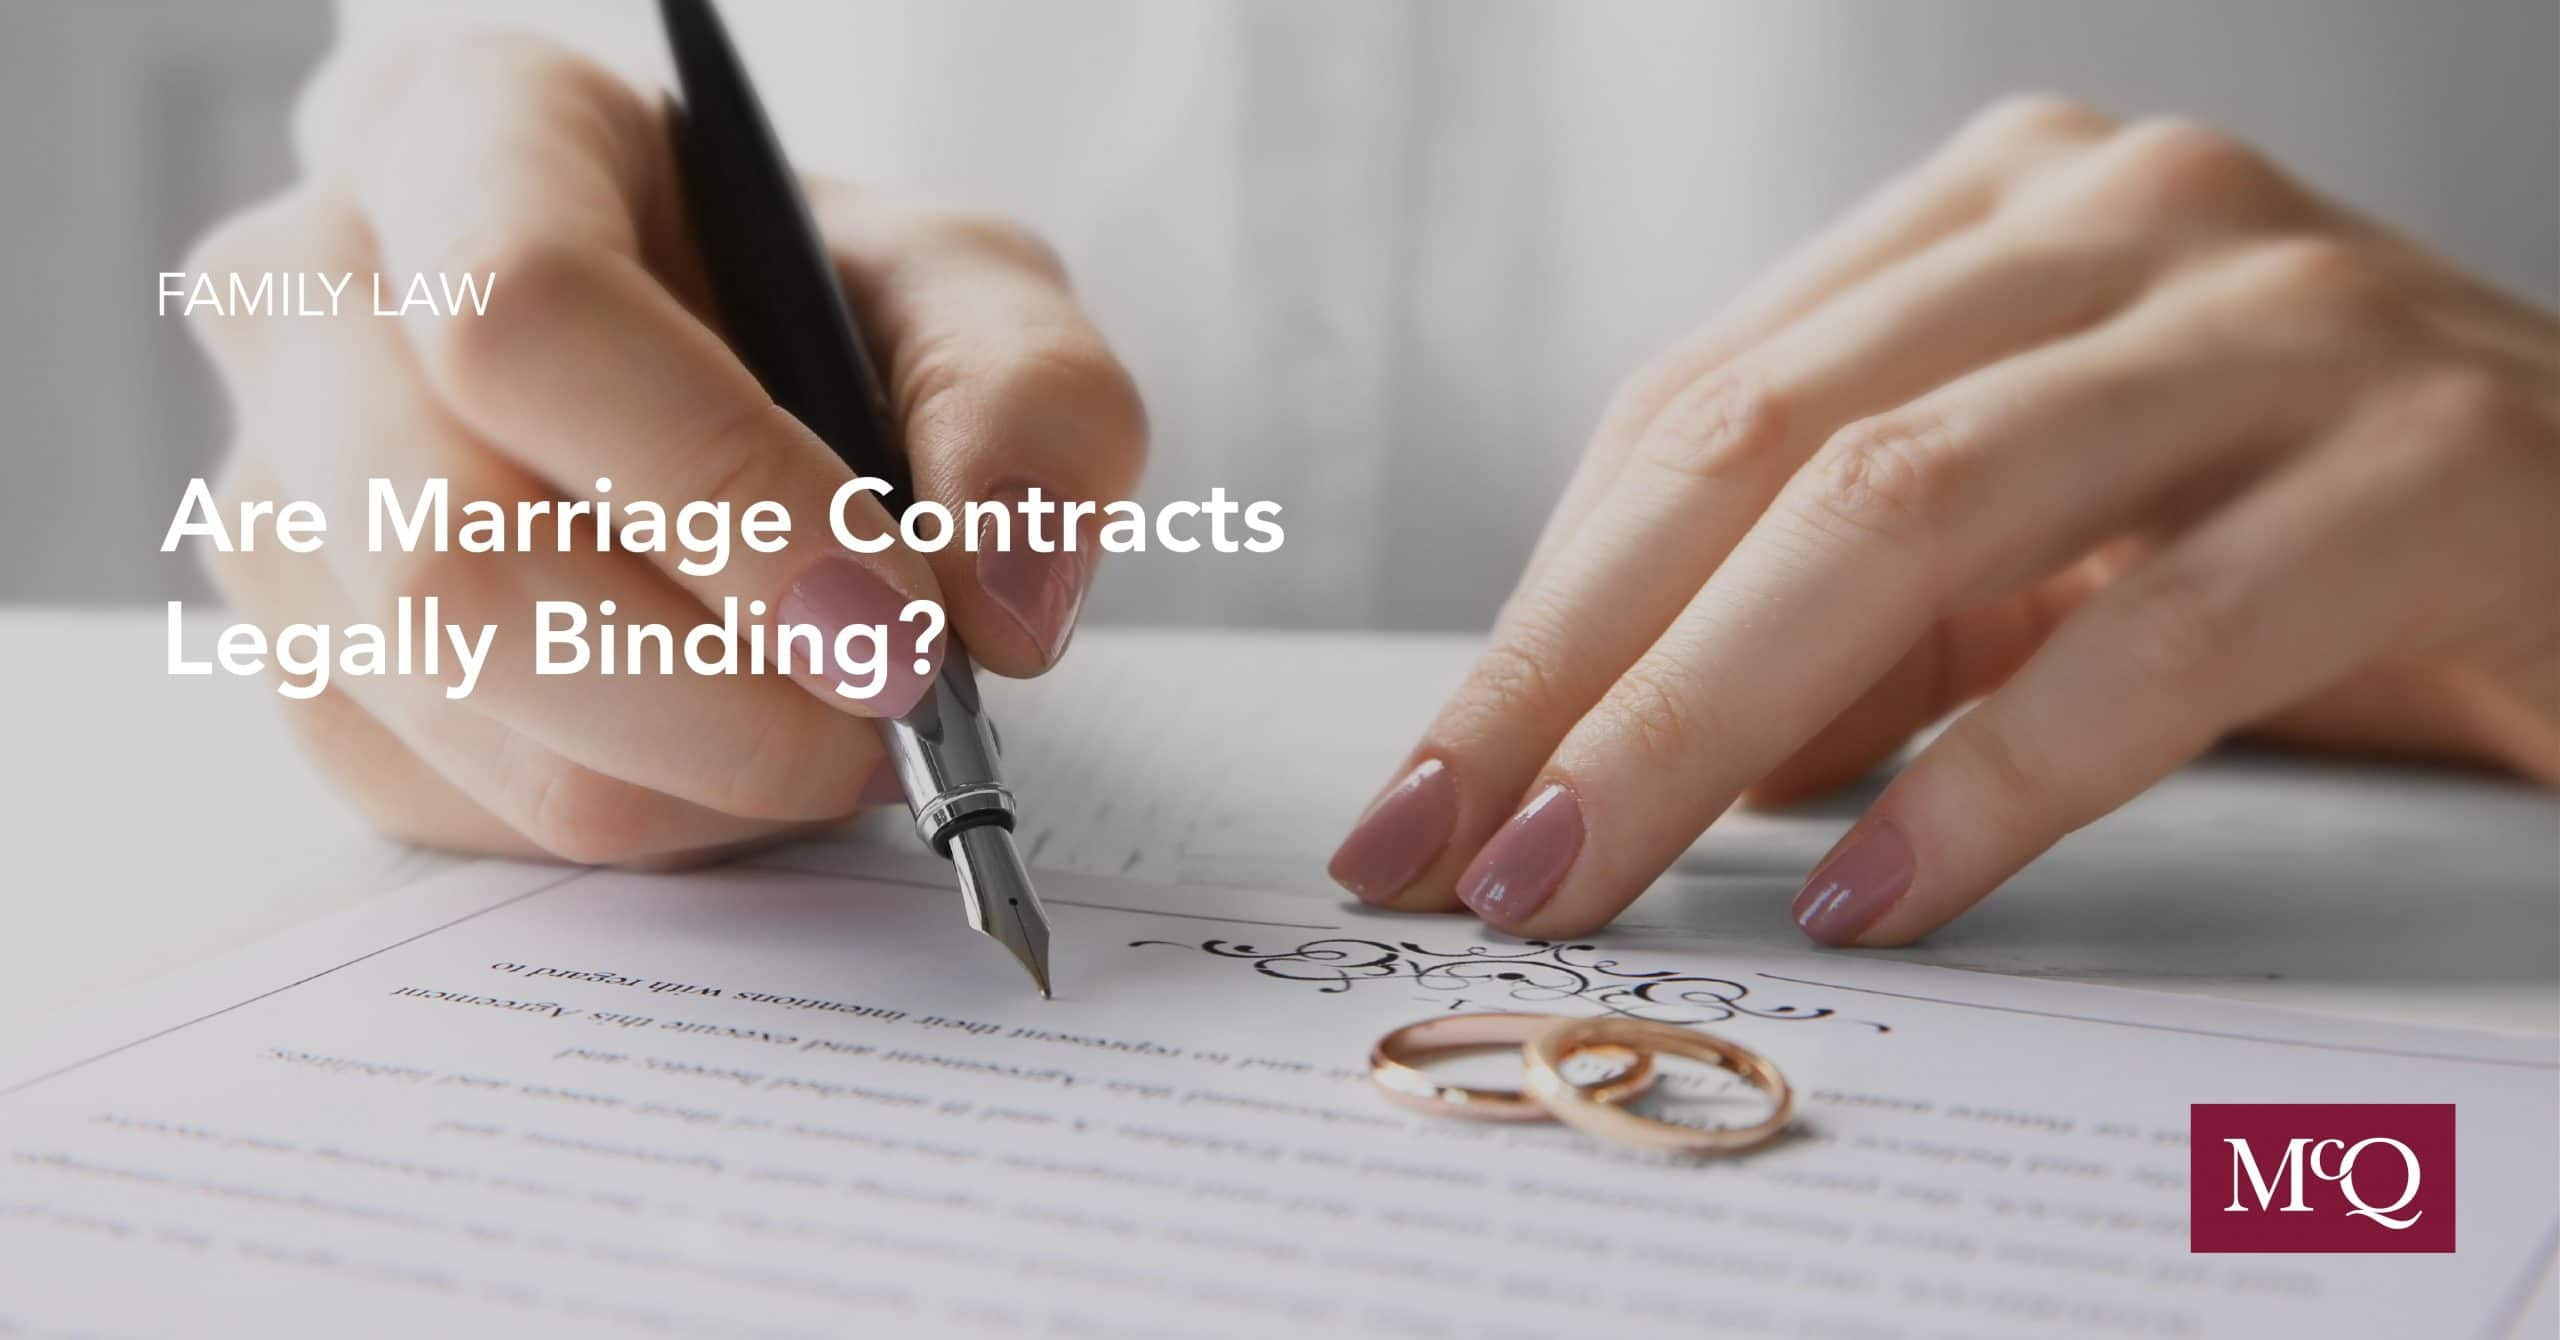 Family Lawyers Answer - Are Marriage Contract Legally Binding? - Blog Cover